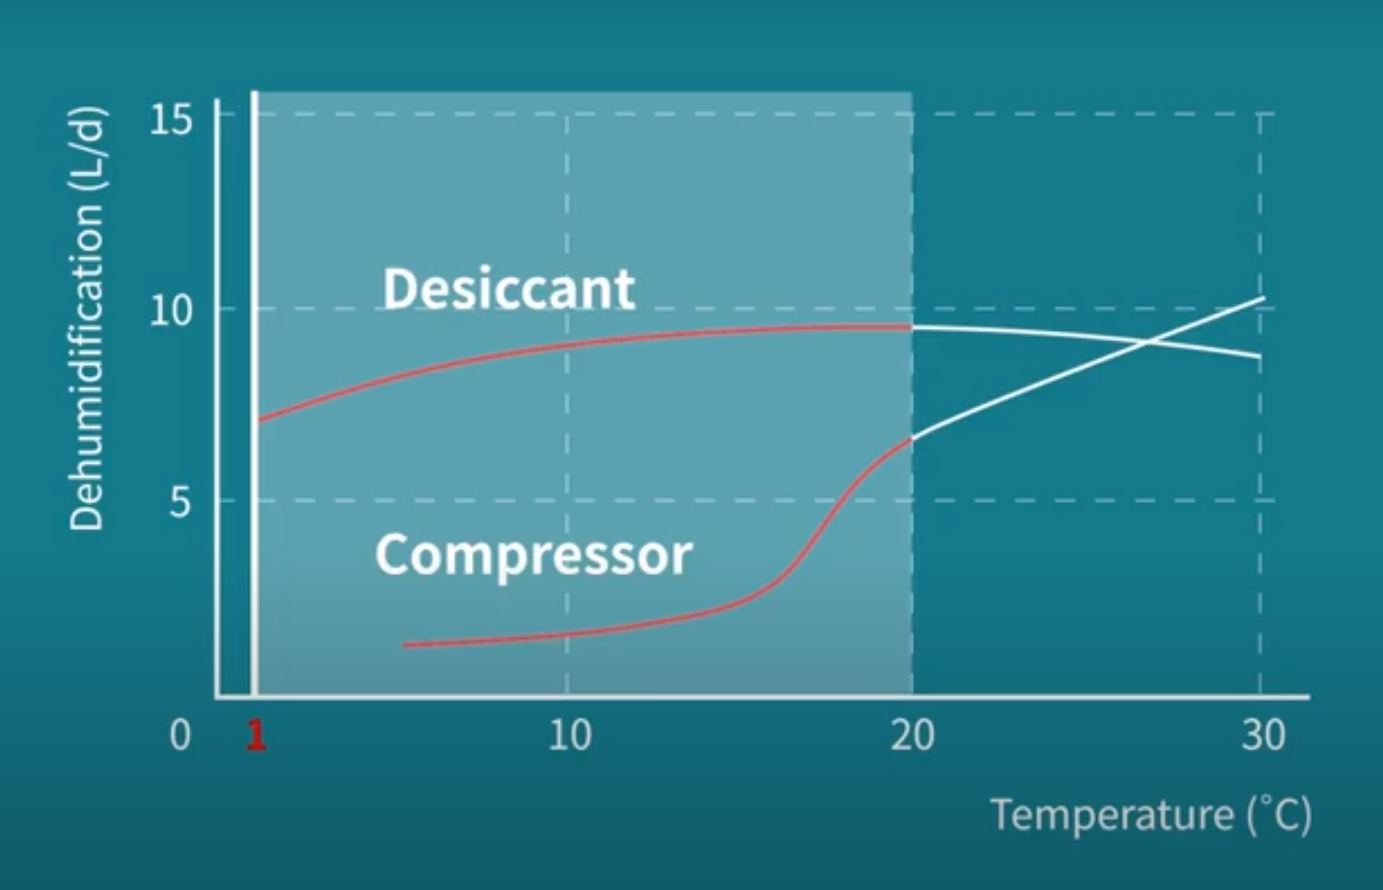 Desiccant dehumidifier vs Compressor dehumidifier extraction rate based on temperature